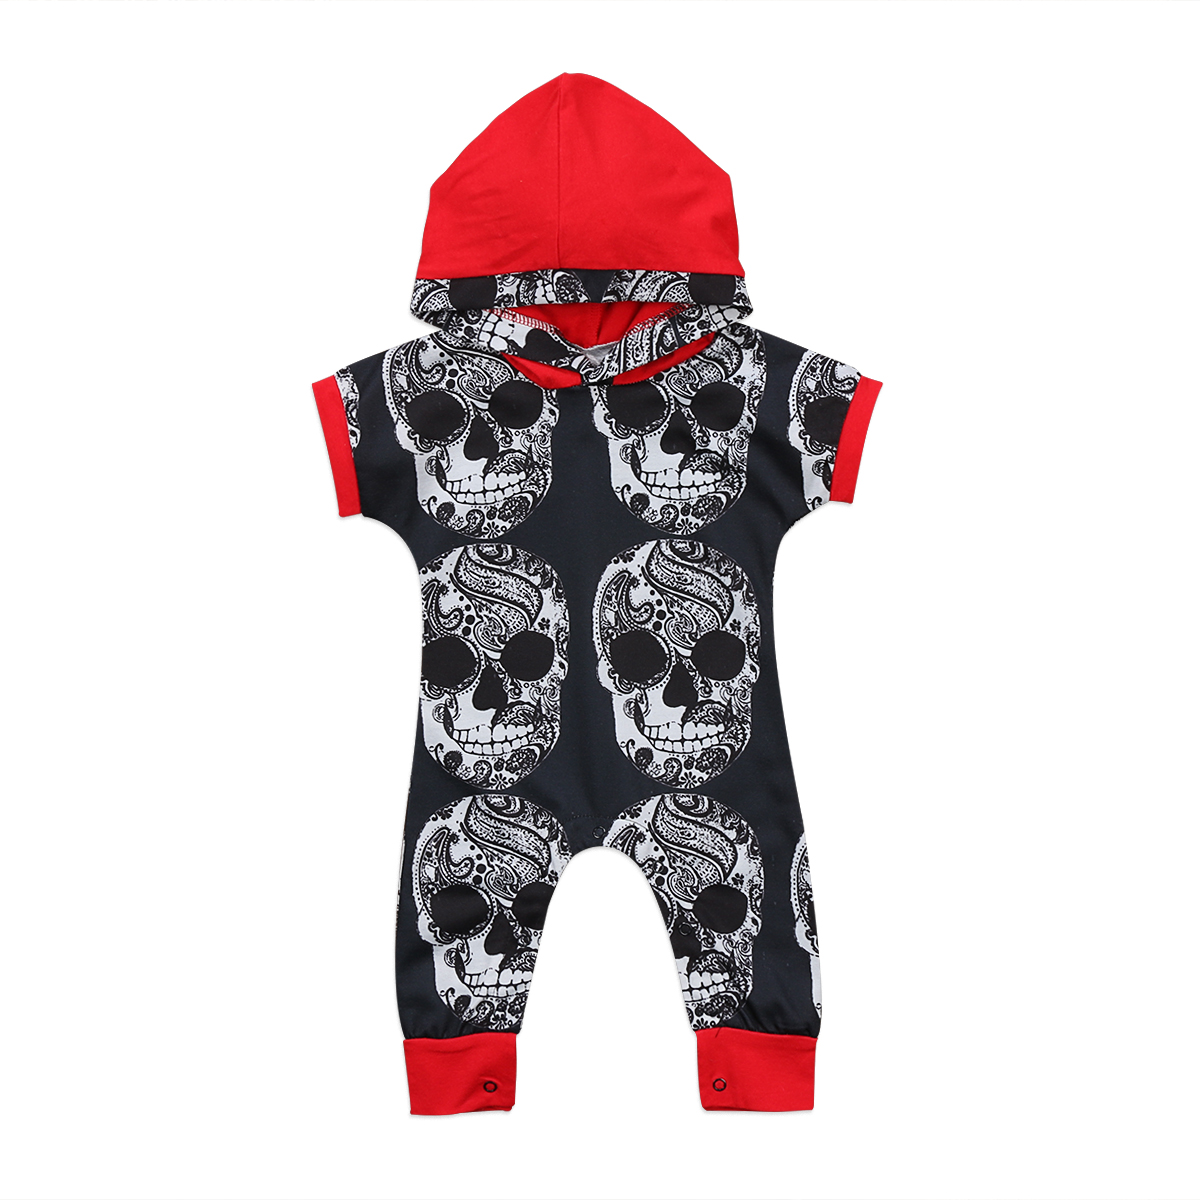 New Cartoon Summer   Romper   Toddler Baby Boy Hooded   Romper   Skull Print Jumpsuit Sleeveless Infant Boys One-Pieces Outfits Clothes